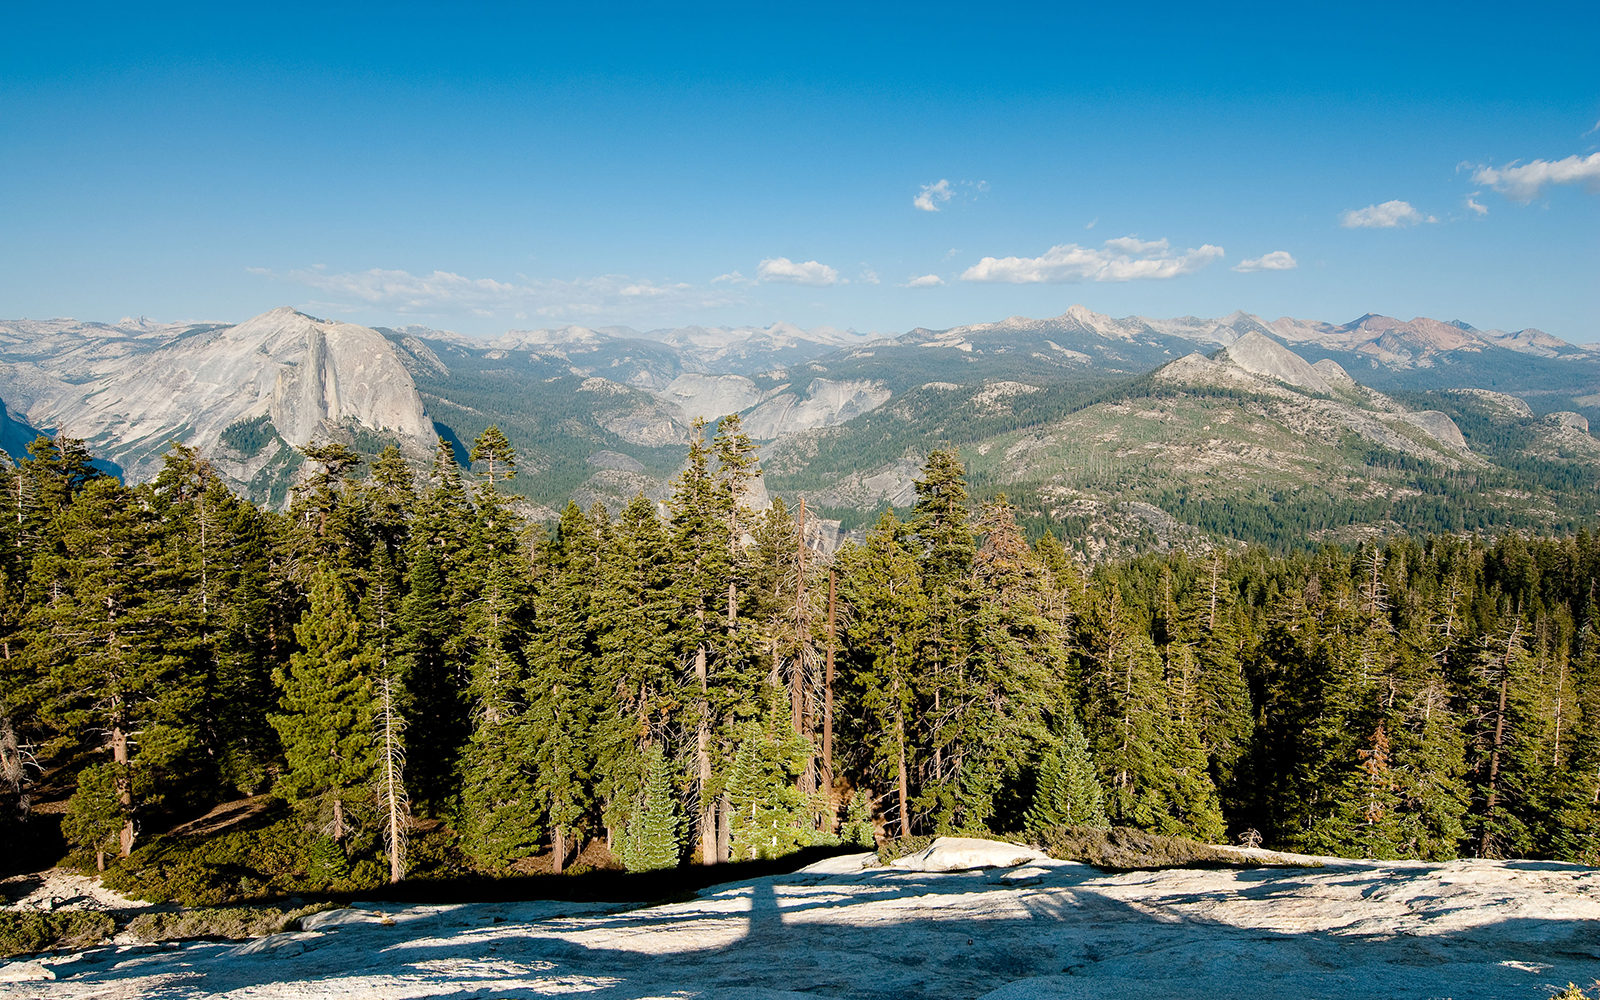 Best U.S. National Park Views: Yosemite National Park